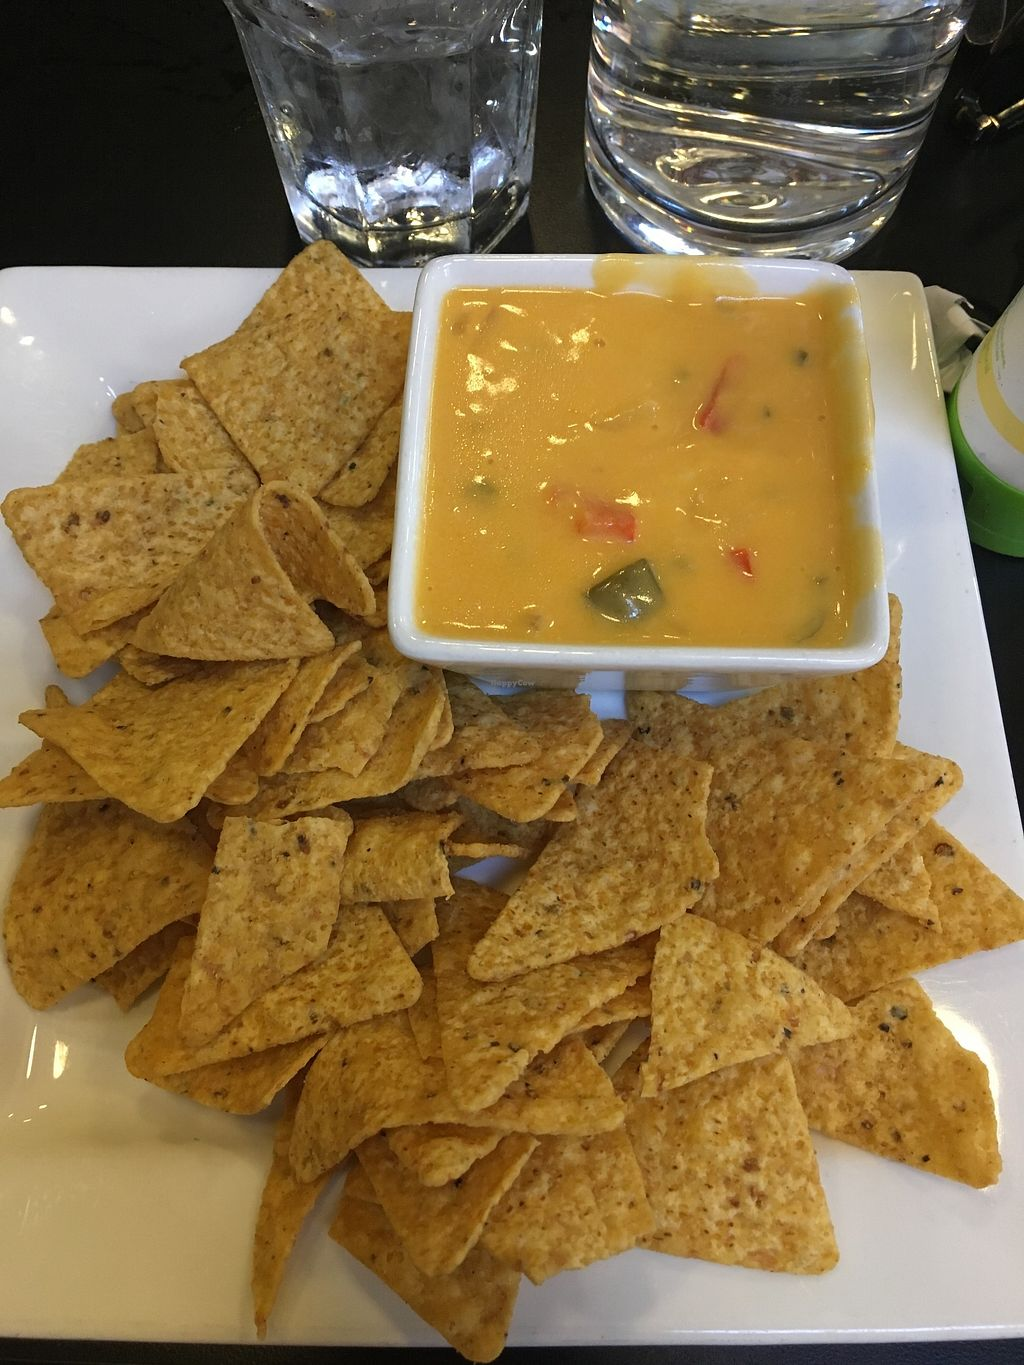 """Photo of Good Life Cafe  by <a href=""""/members/profile/Zeinay"""">Zeinay</a> <br/>Queso <br/> November 5, 2017  - <a href='/contact/abuse/image/26543/321855'>Report</a>"""